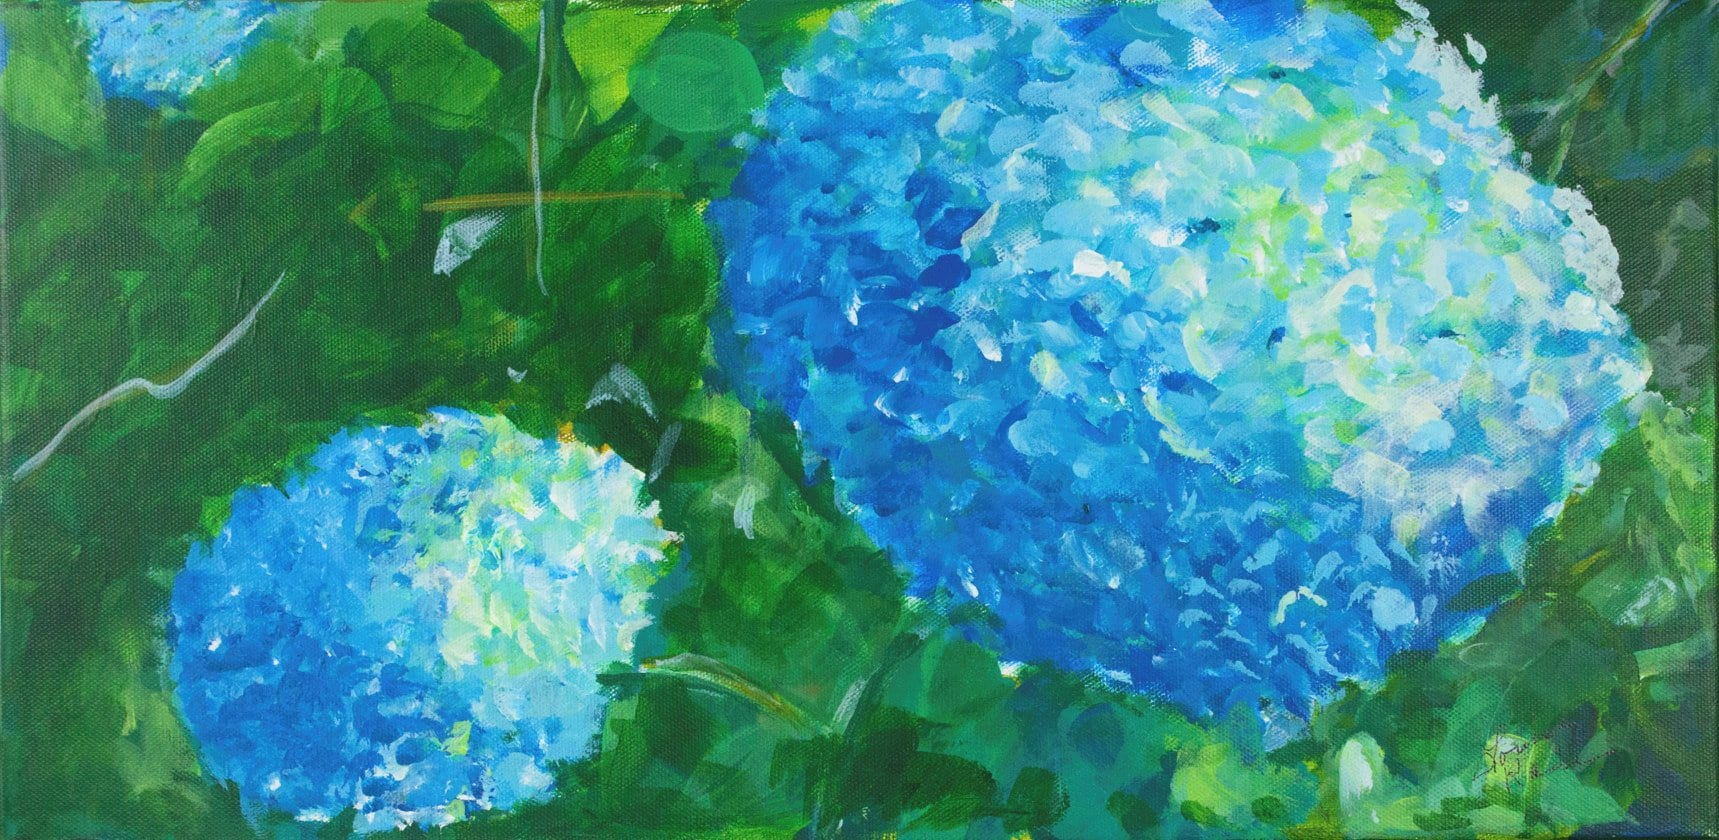 Acrylic paint on canvas is the medium used for this realistic floral still-life depicting a close-up of a beautiful blooming blue hydrangea bush.